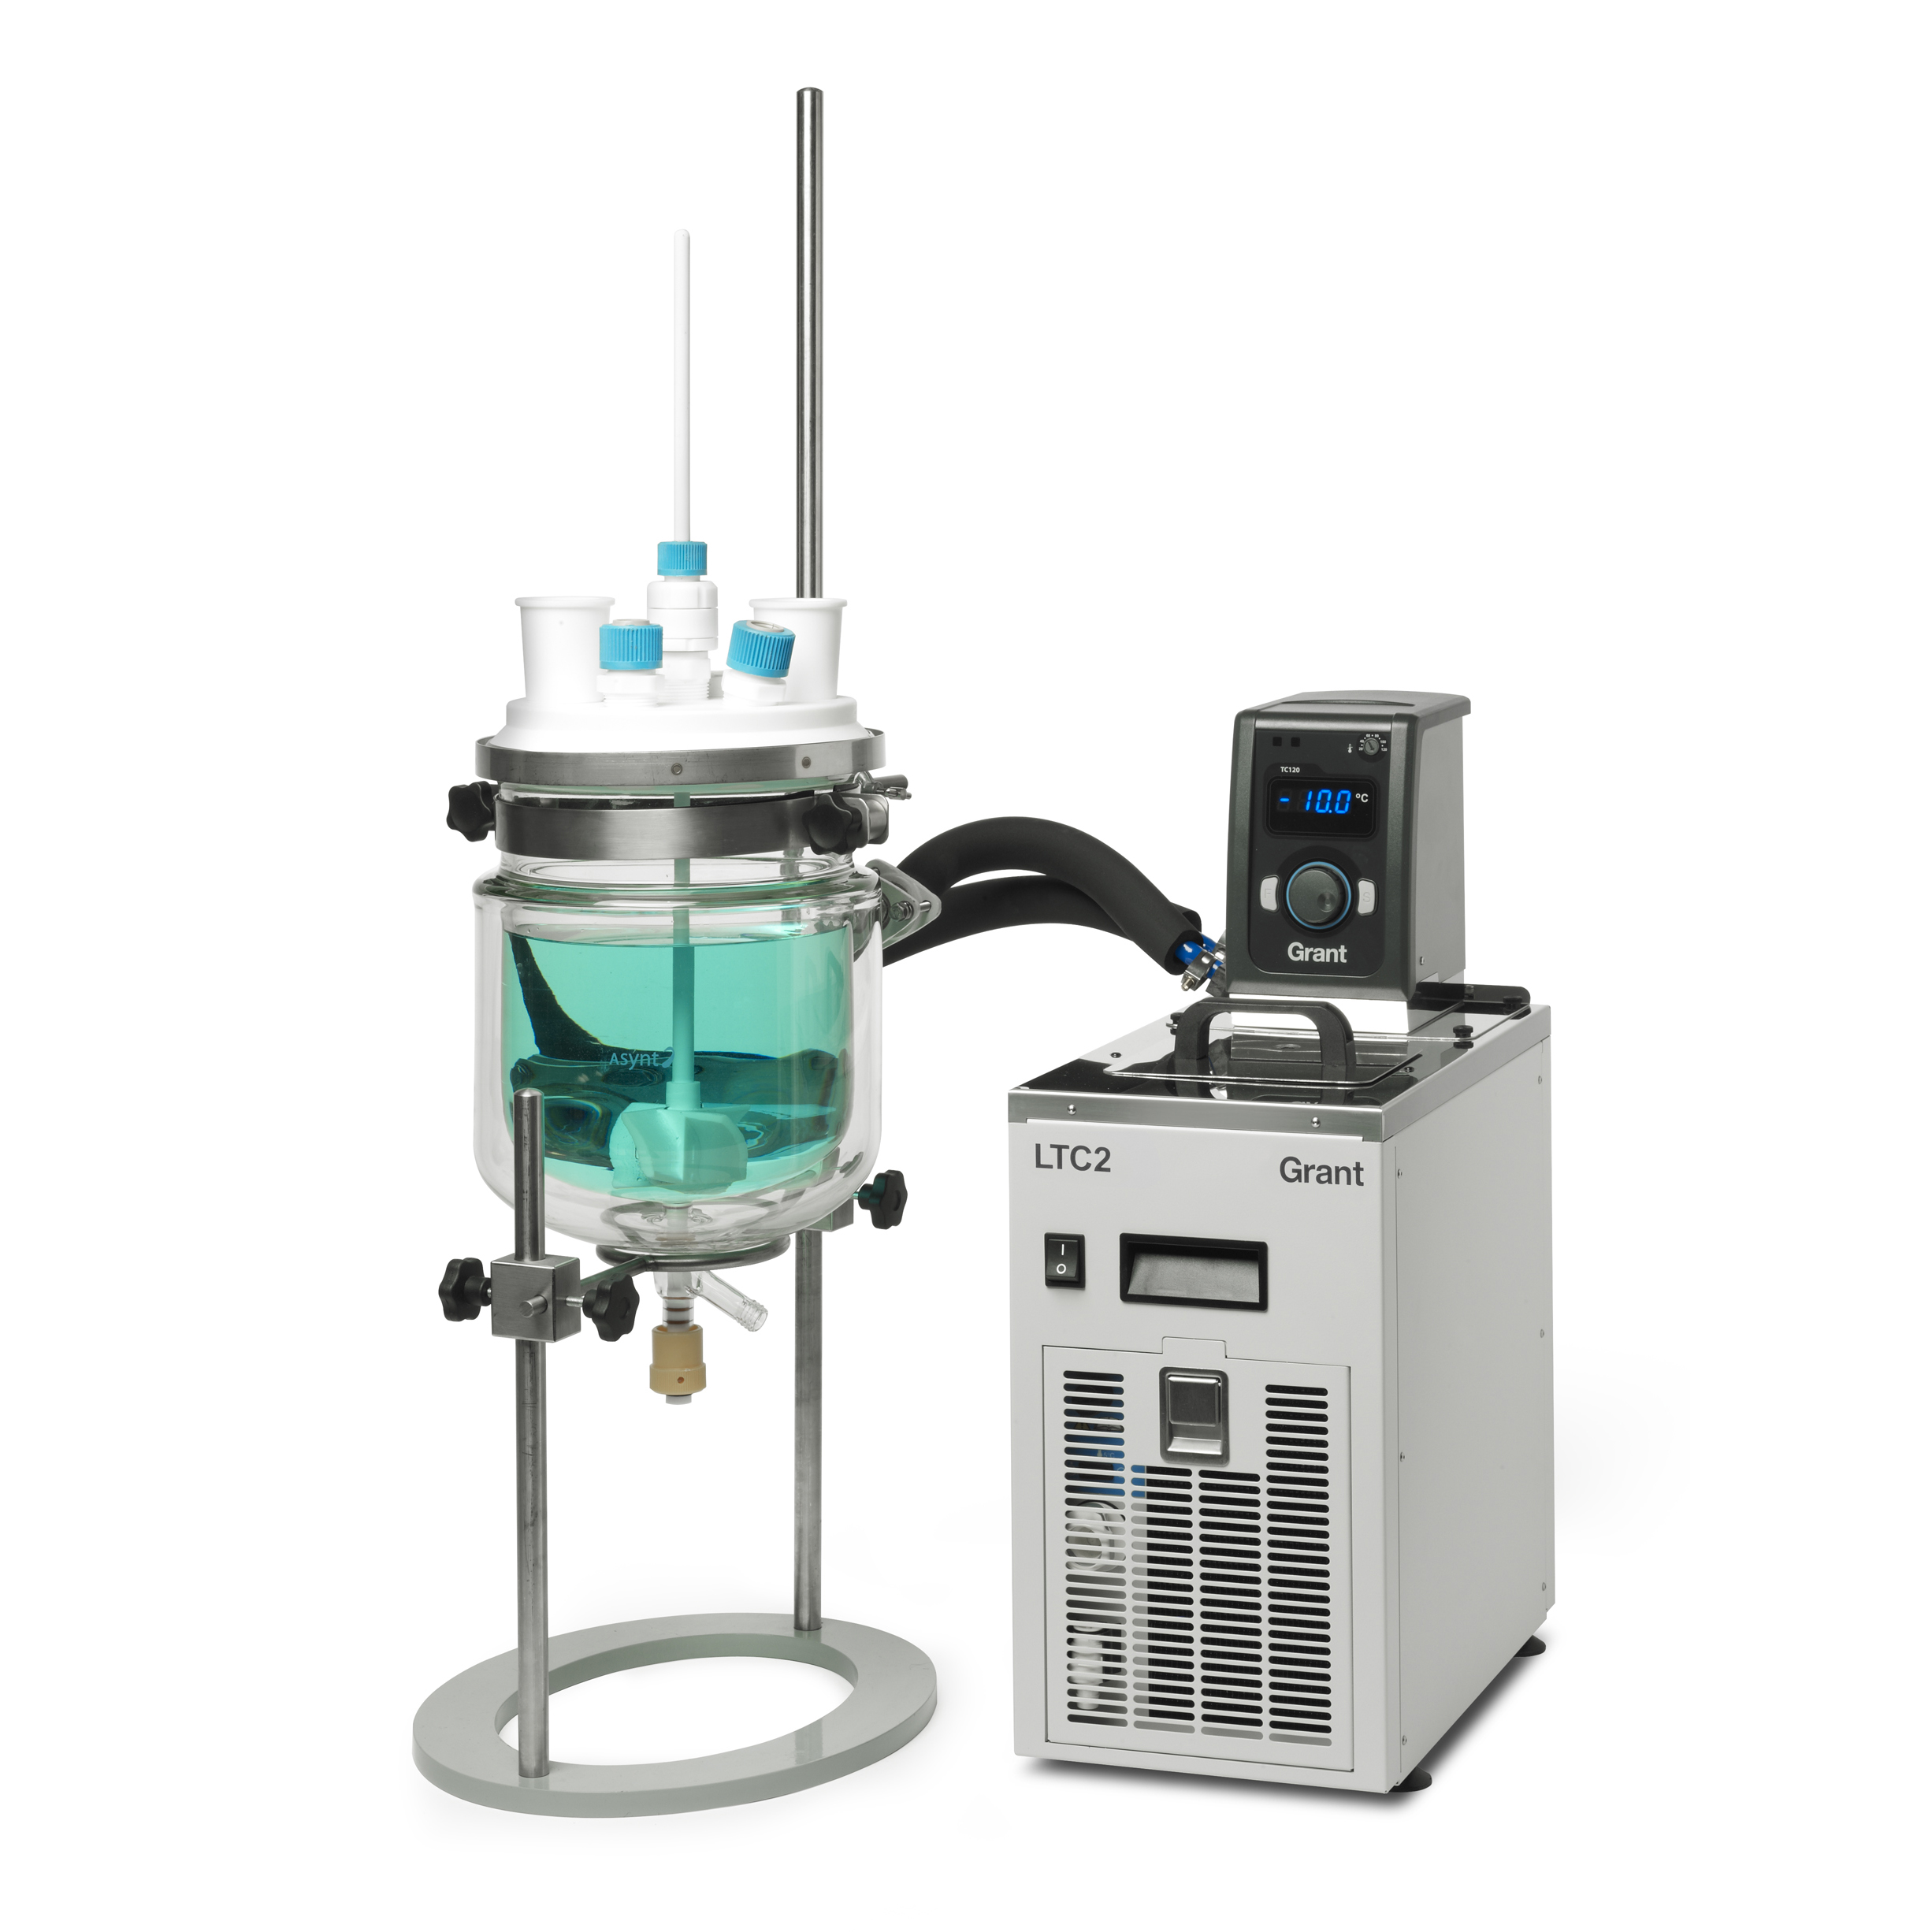 ReactoMate CLR with Easy Support and Grant LTC2 chiller